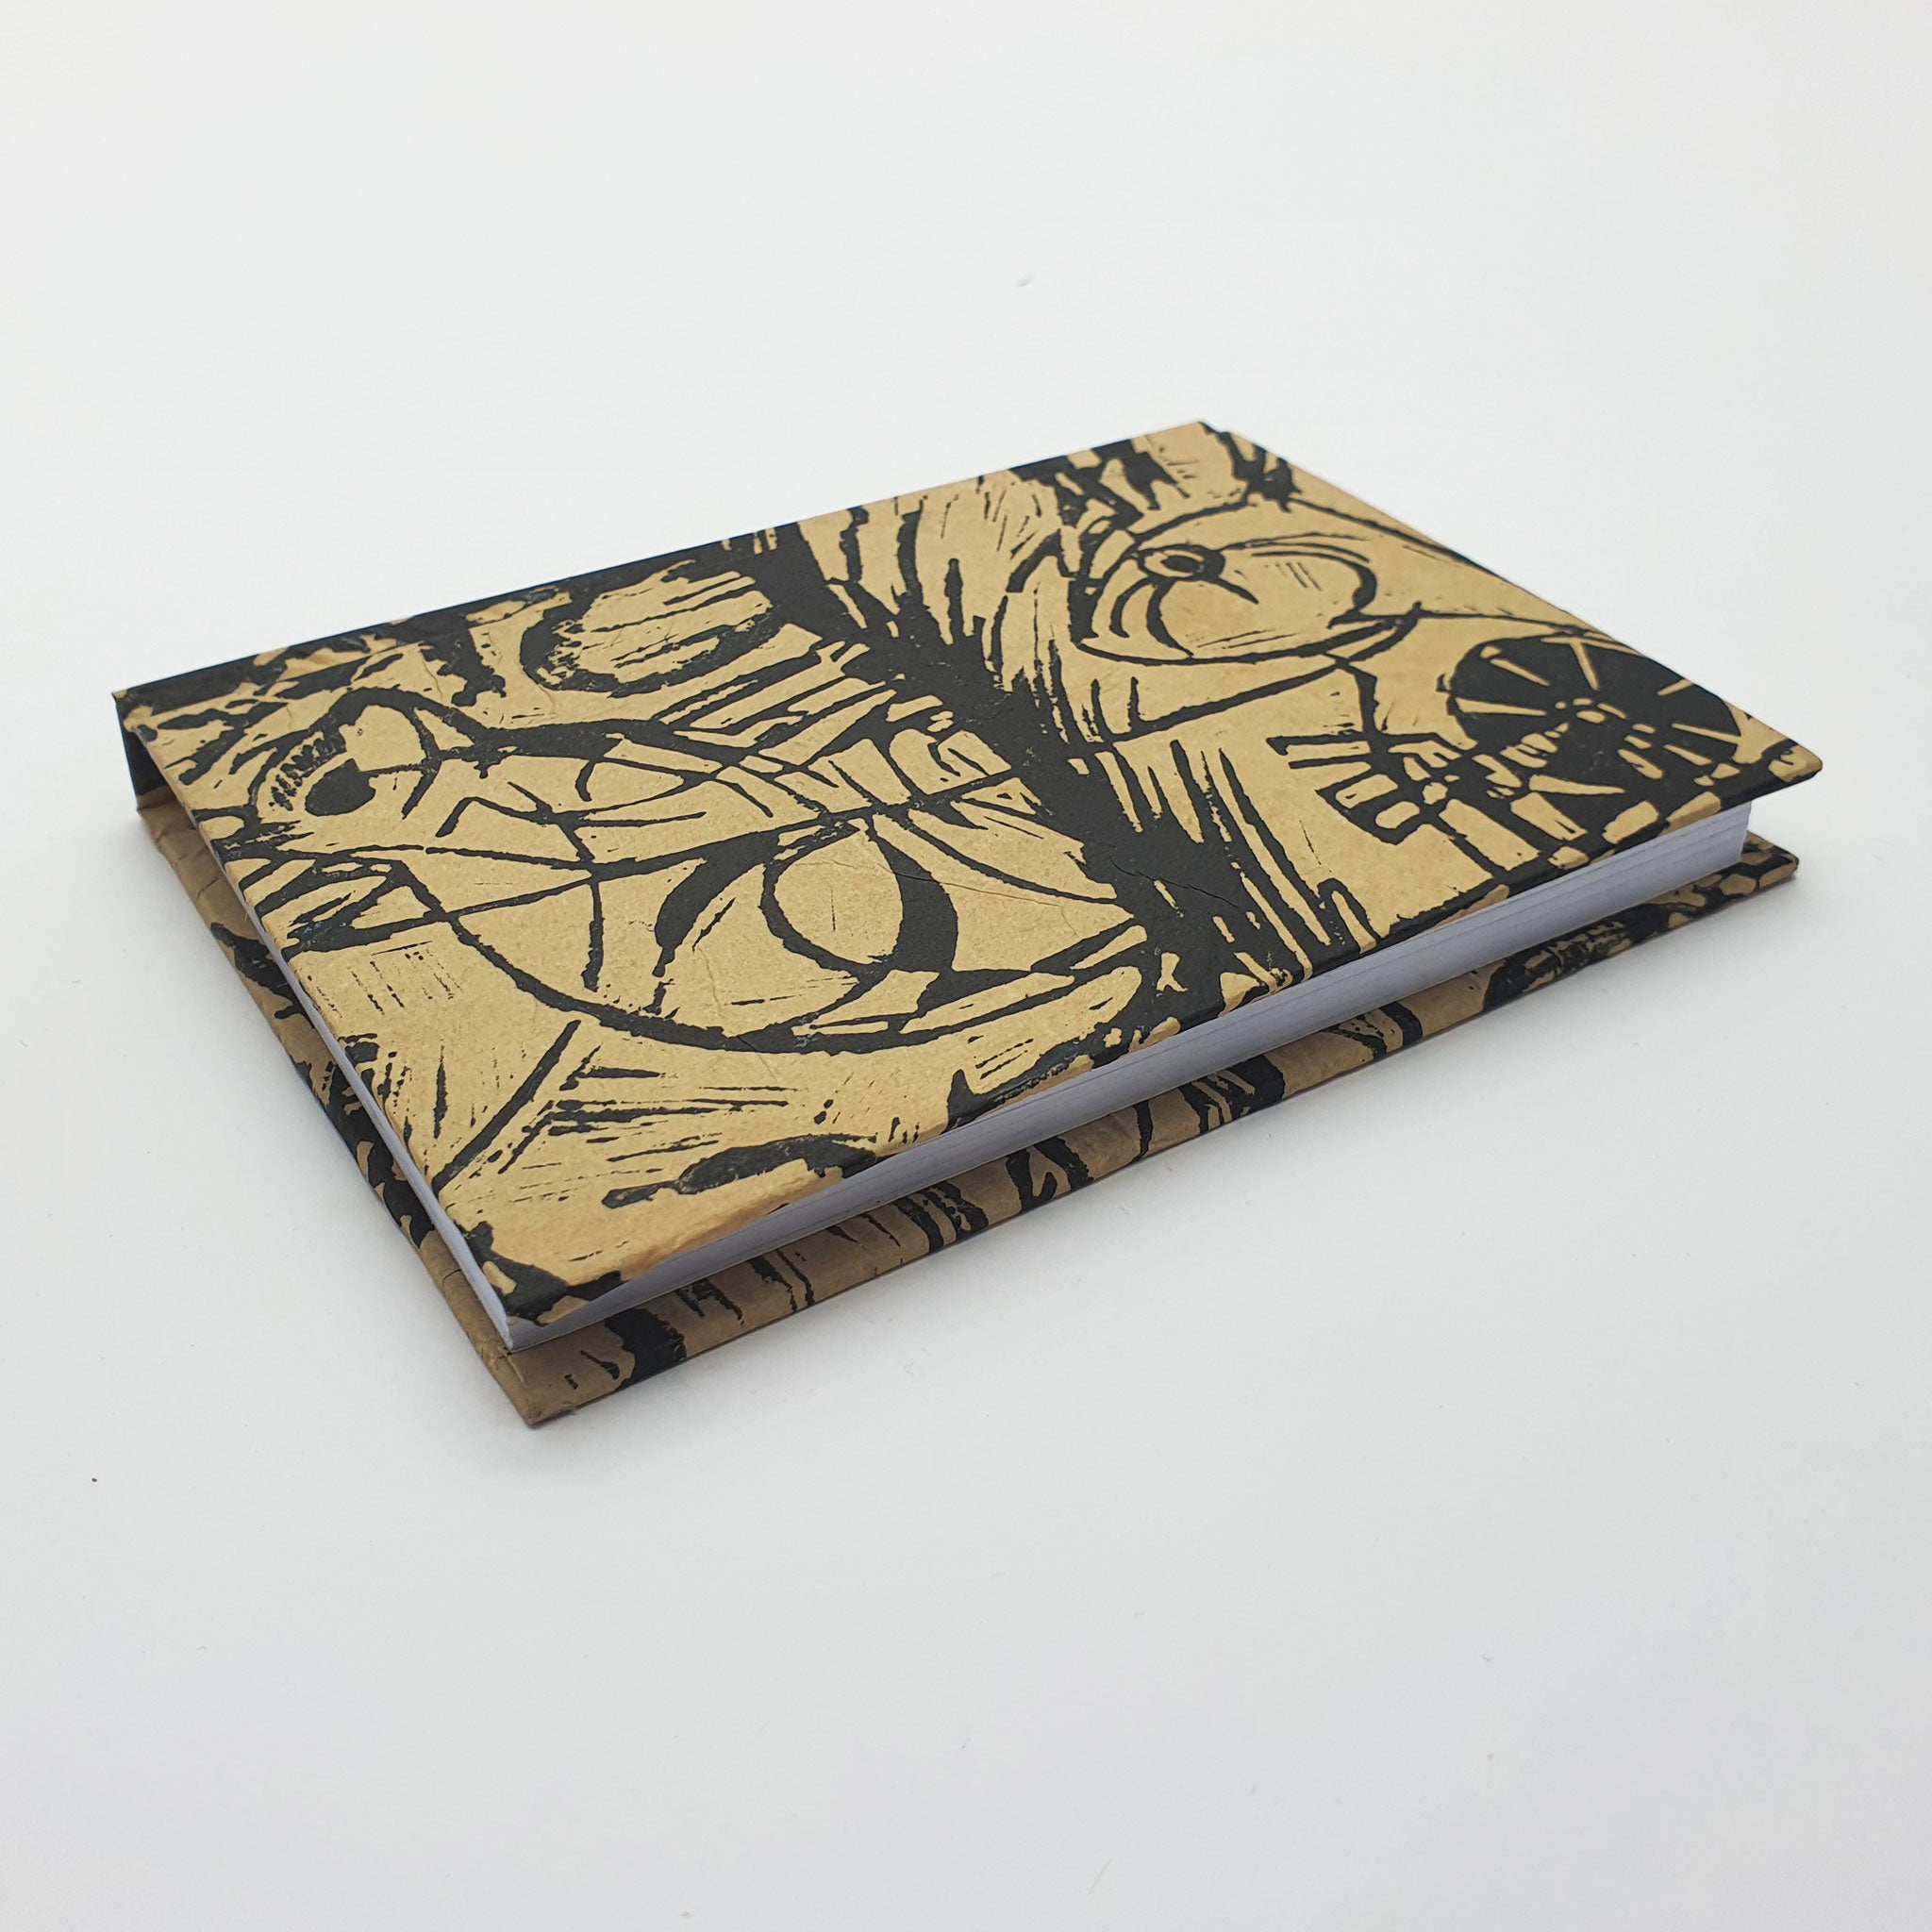 Recycled books – Lino Block Print (A6)